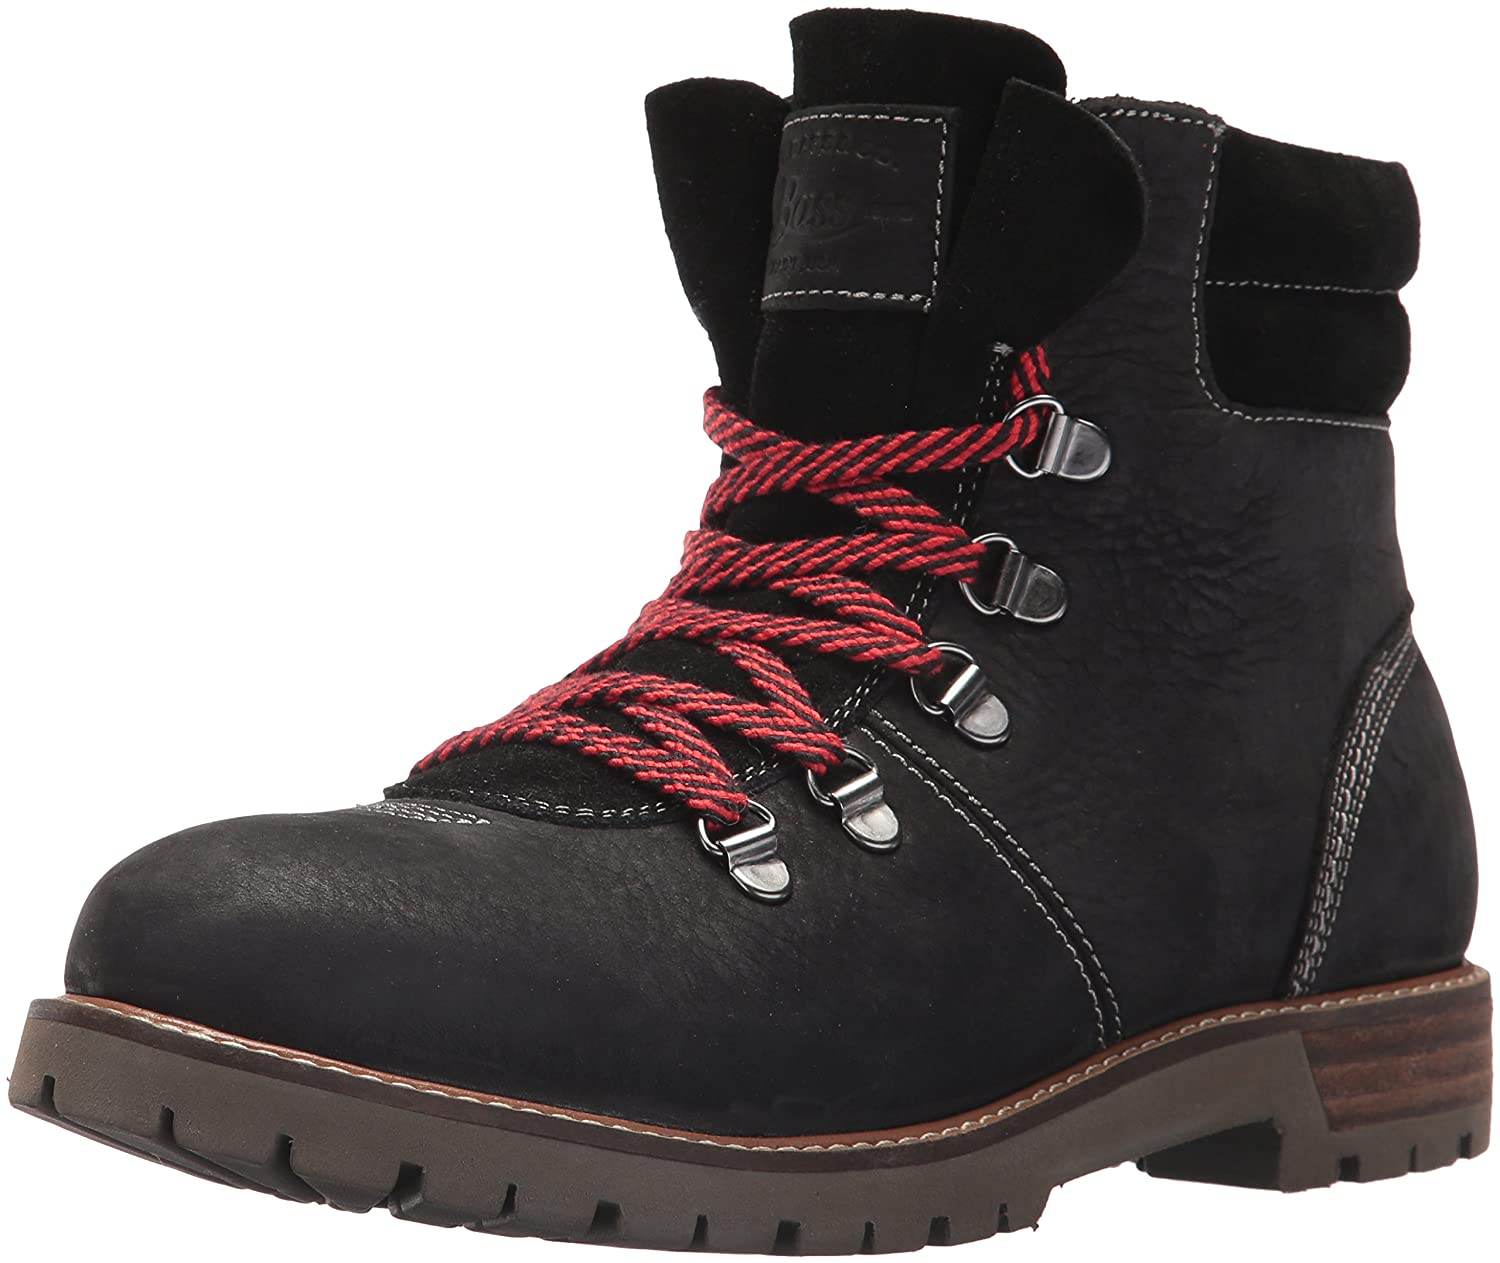 G.H. Bass & Co. Women's Nadine Chukka Boot B06Y1NQ39N 7.5 B(M) US|Black